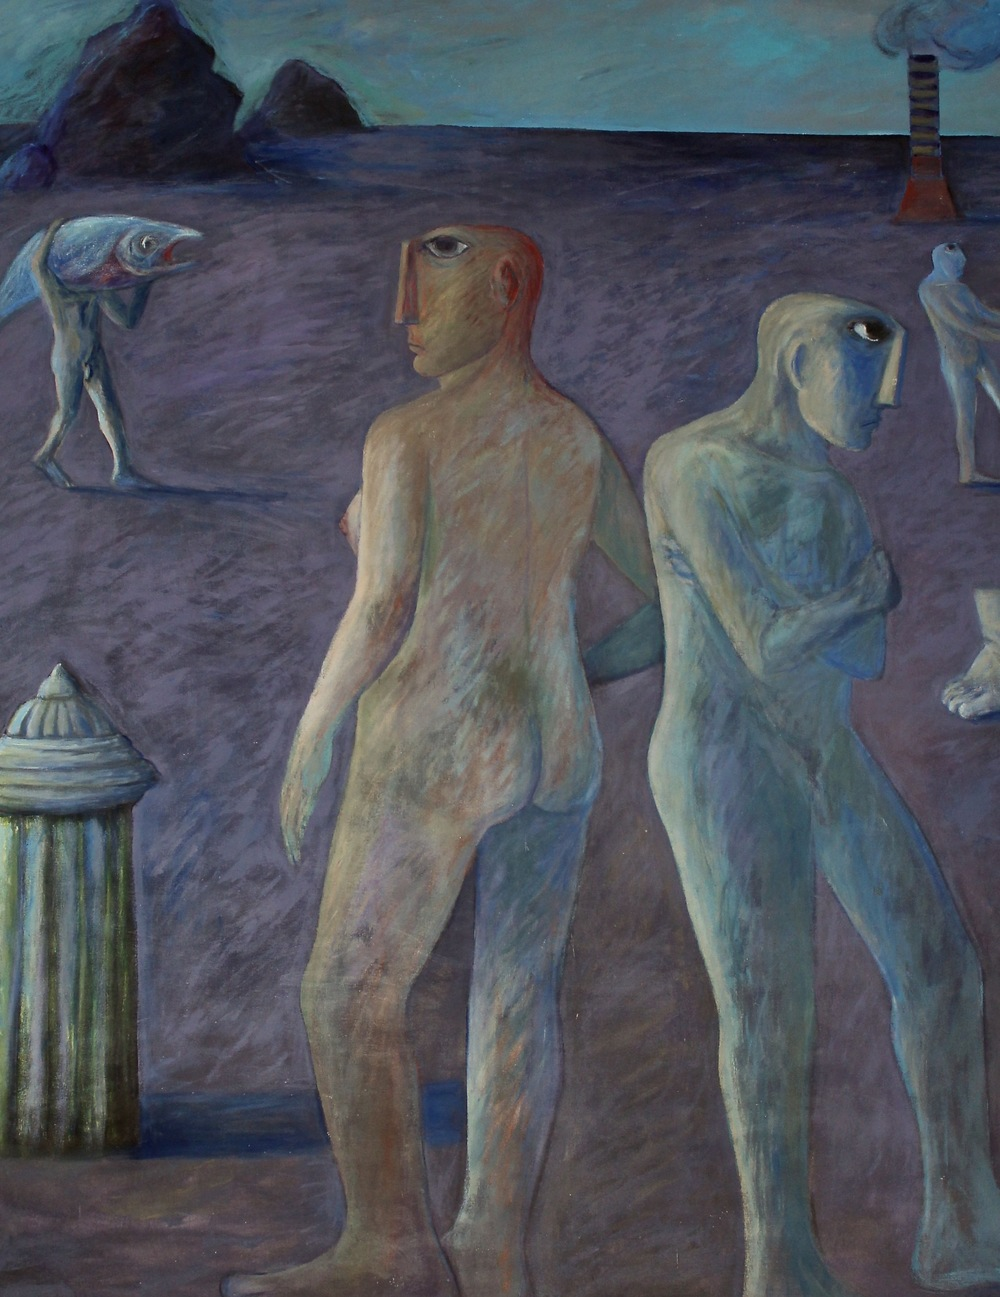 Ahmed Morsi, Seaside, 1995, (diptych, detail) Acrylic on canvas, 235 x 360 cm.